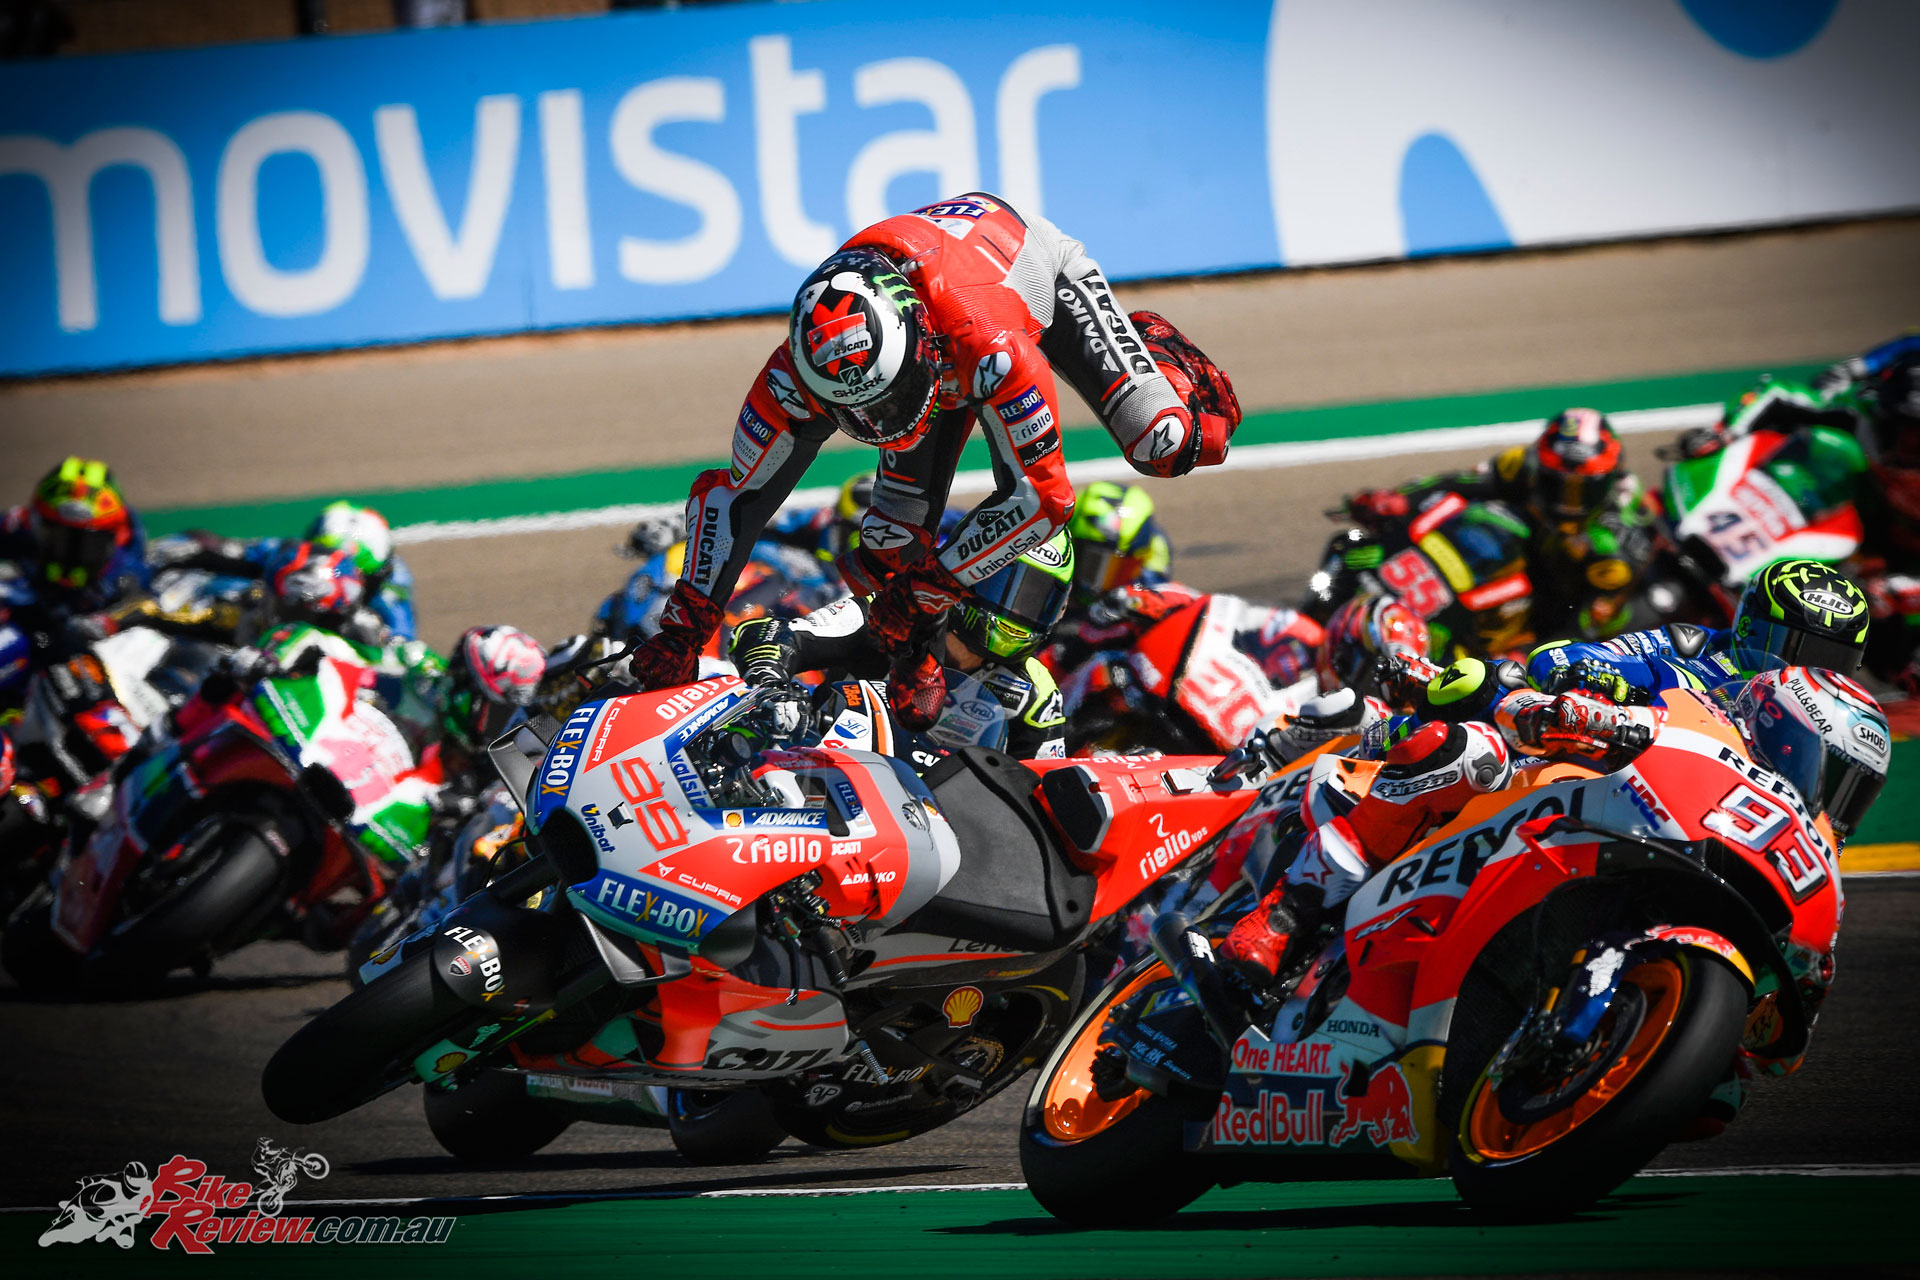 A first corner crash ruled Lorenzo out of contention